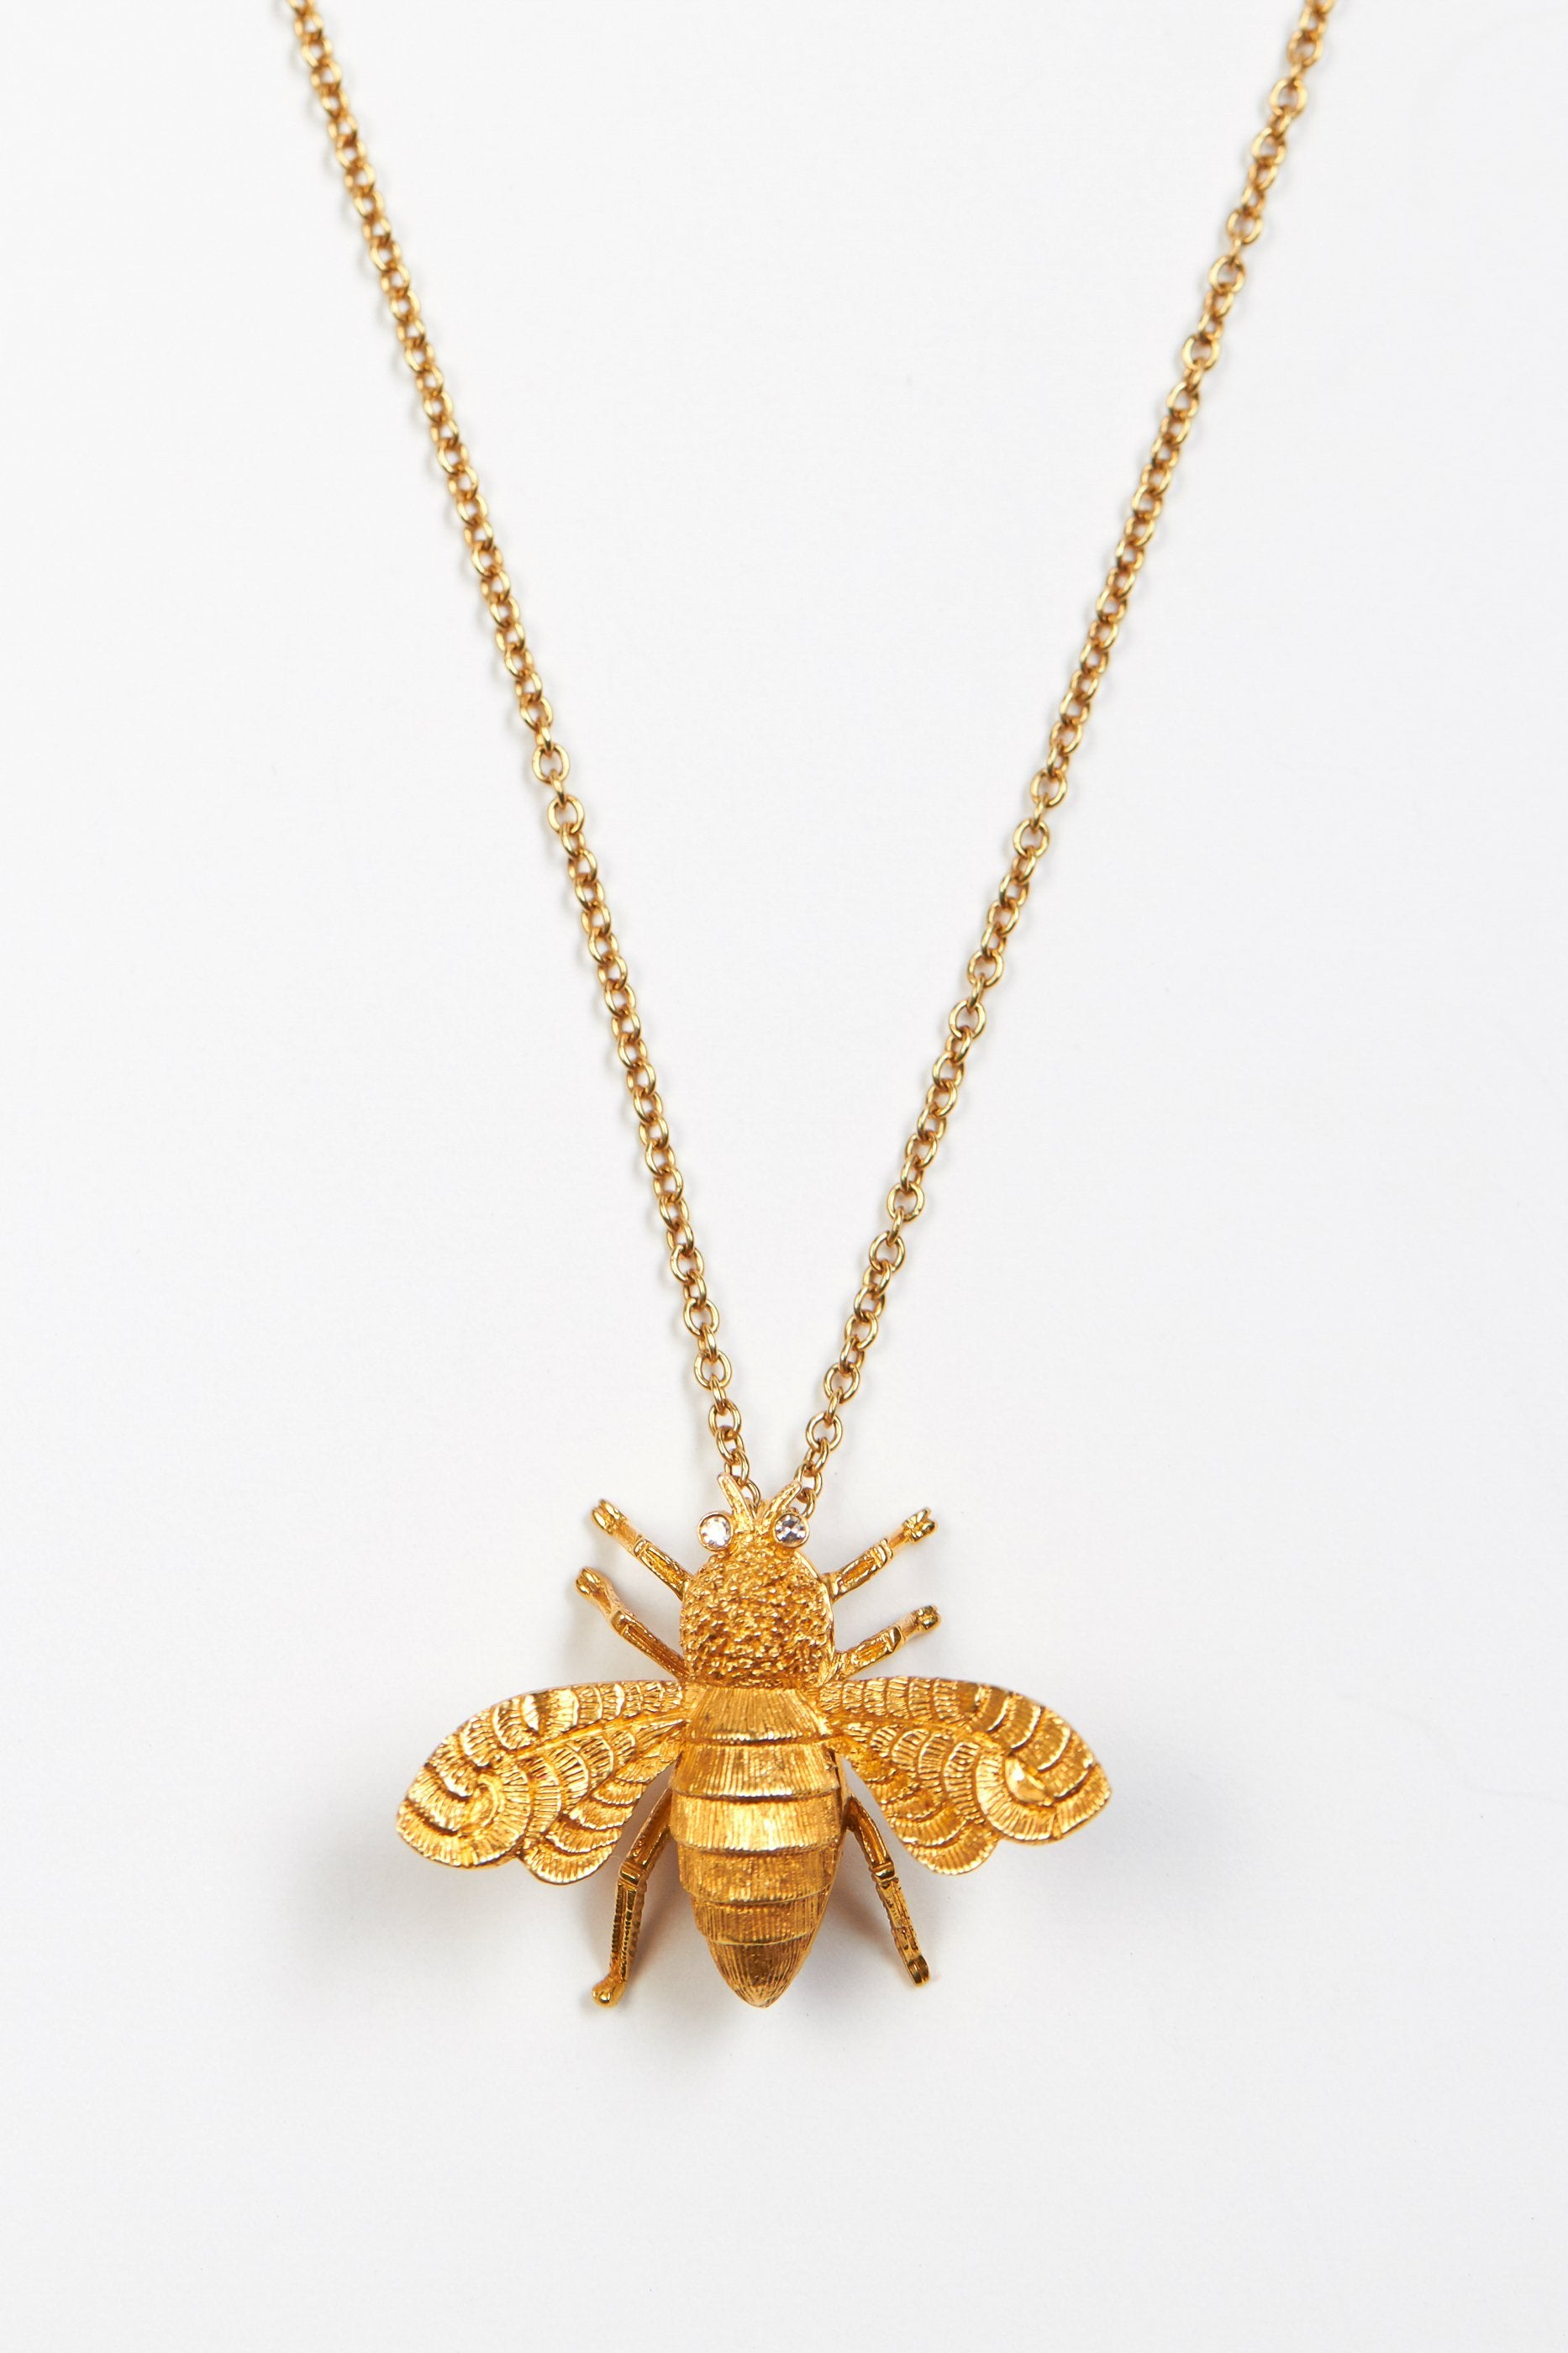 gold tree image honey bee danon necklace products the tone rowan pendant